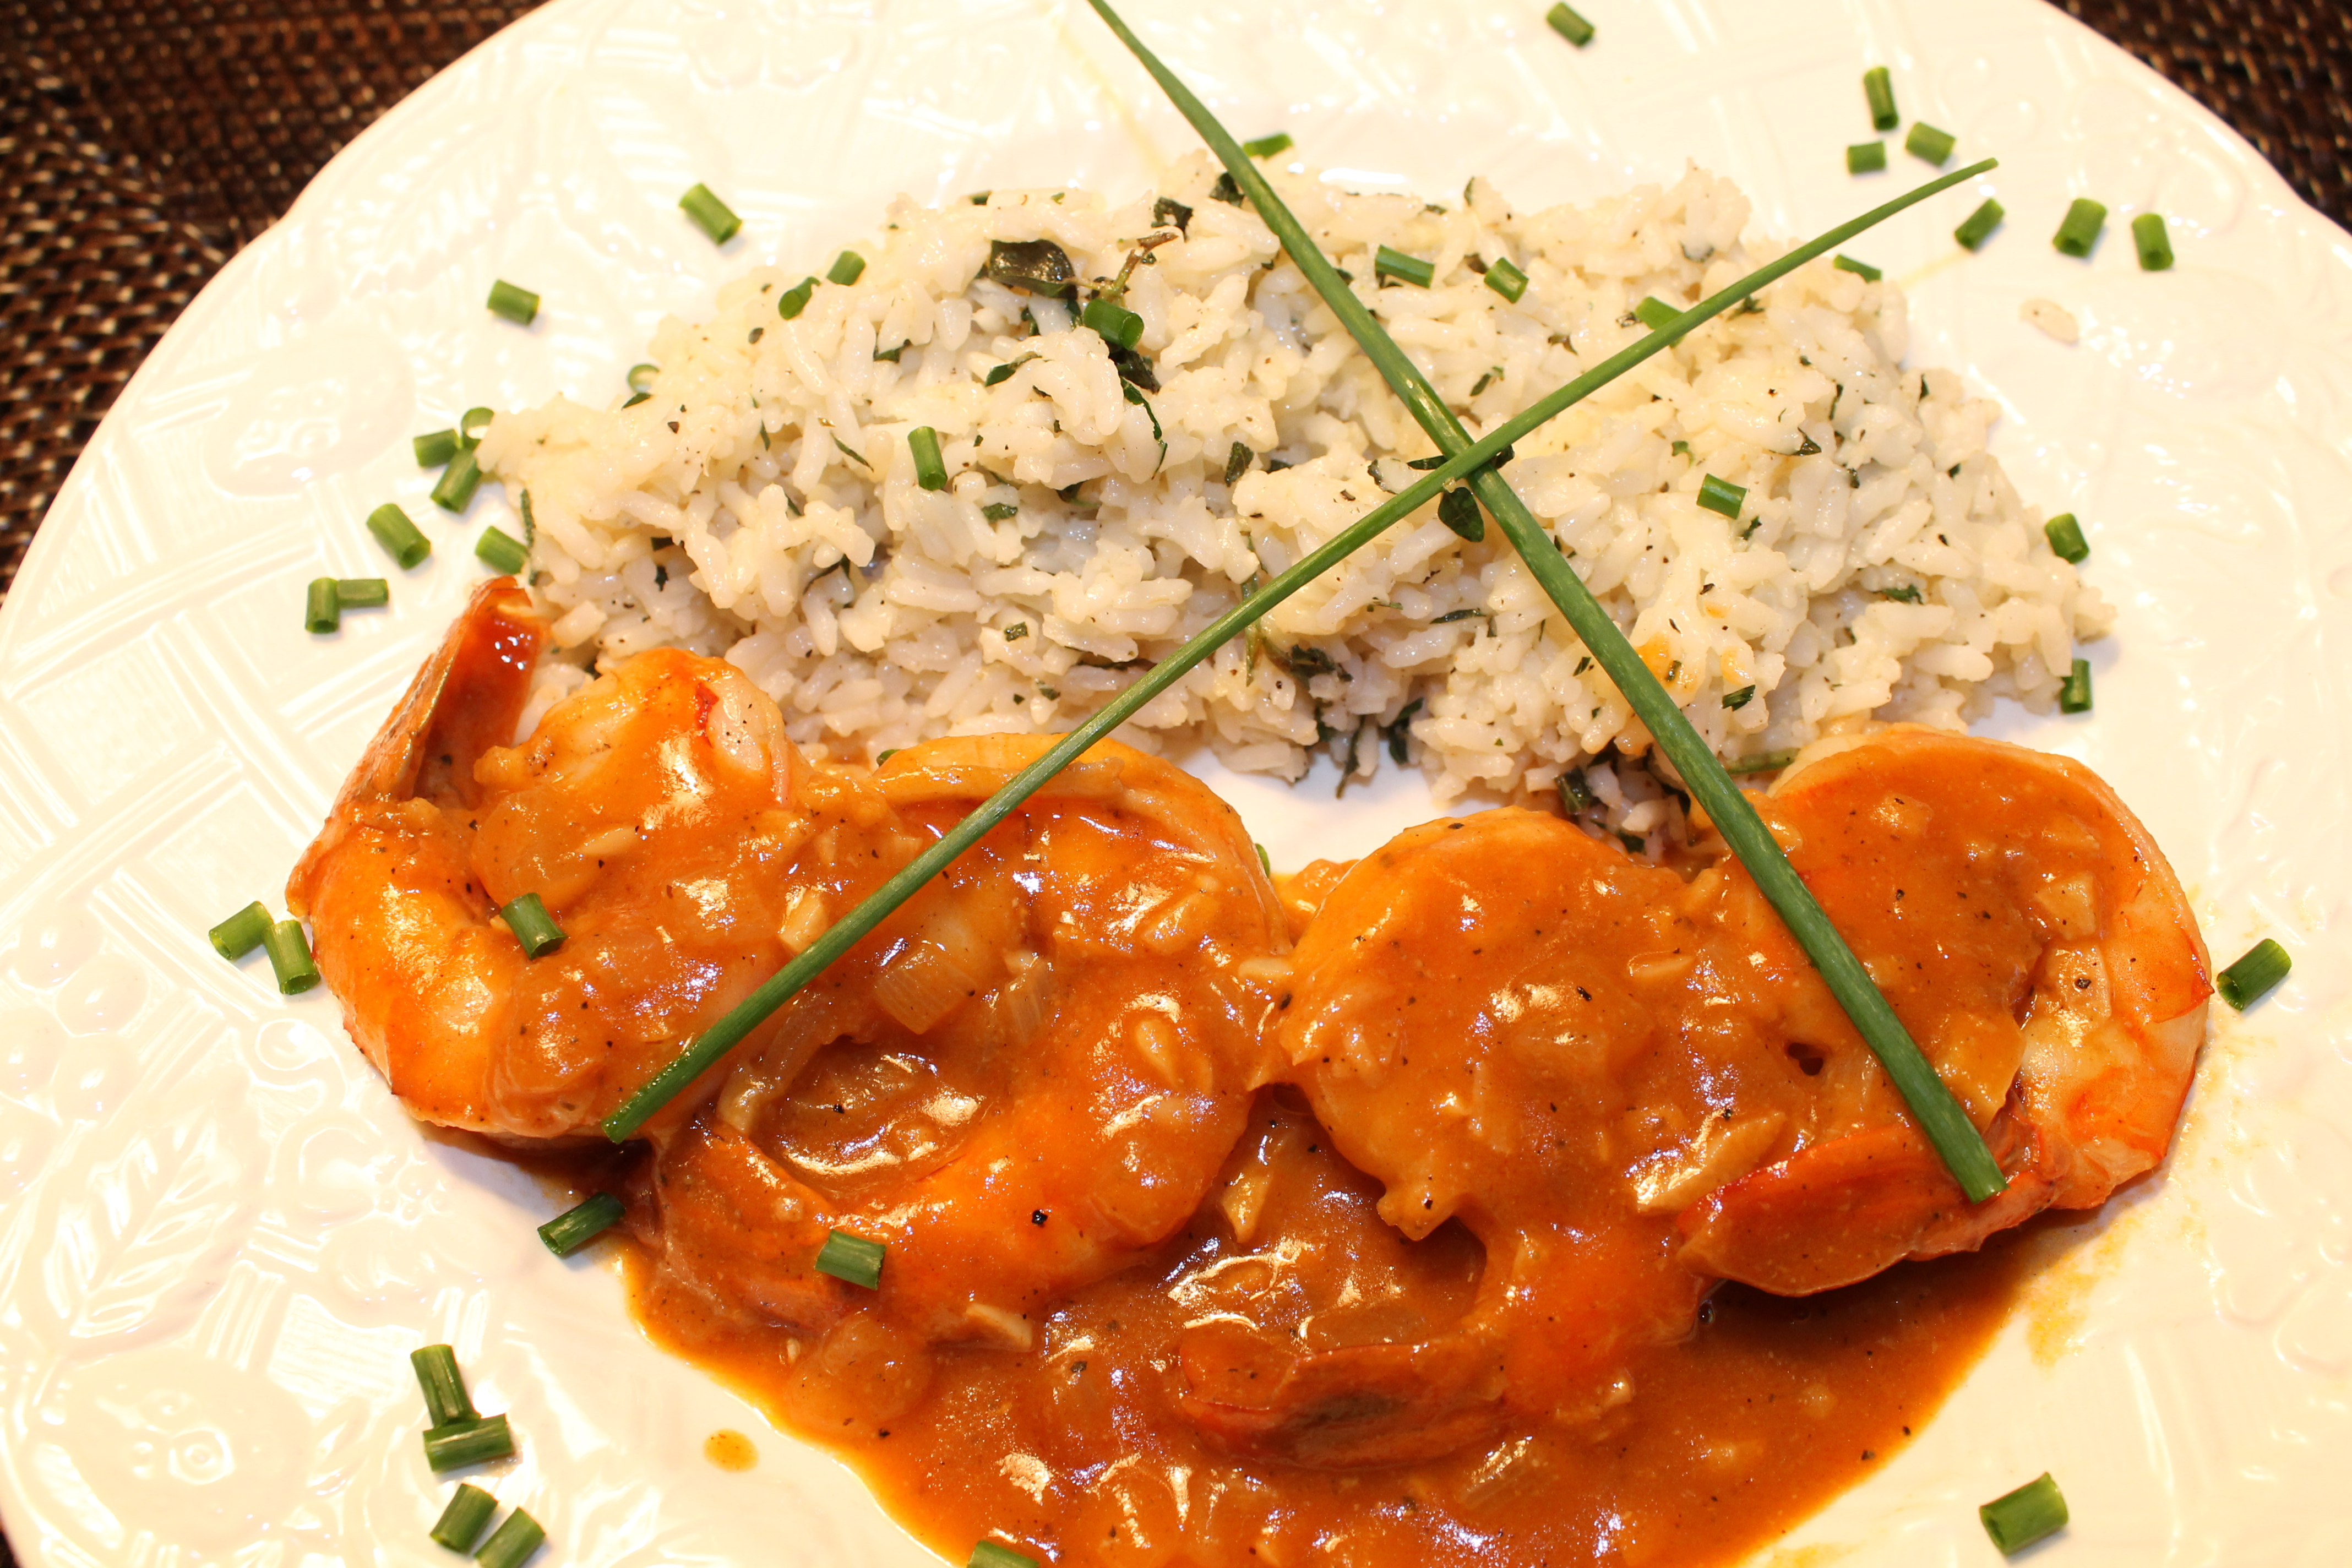 Spicy New Orleans Style Shrimp | Back Road Journal